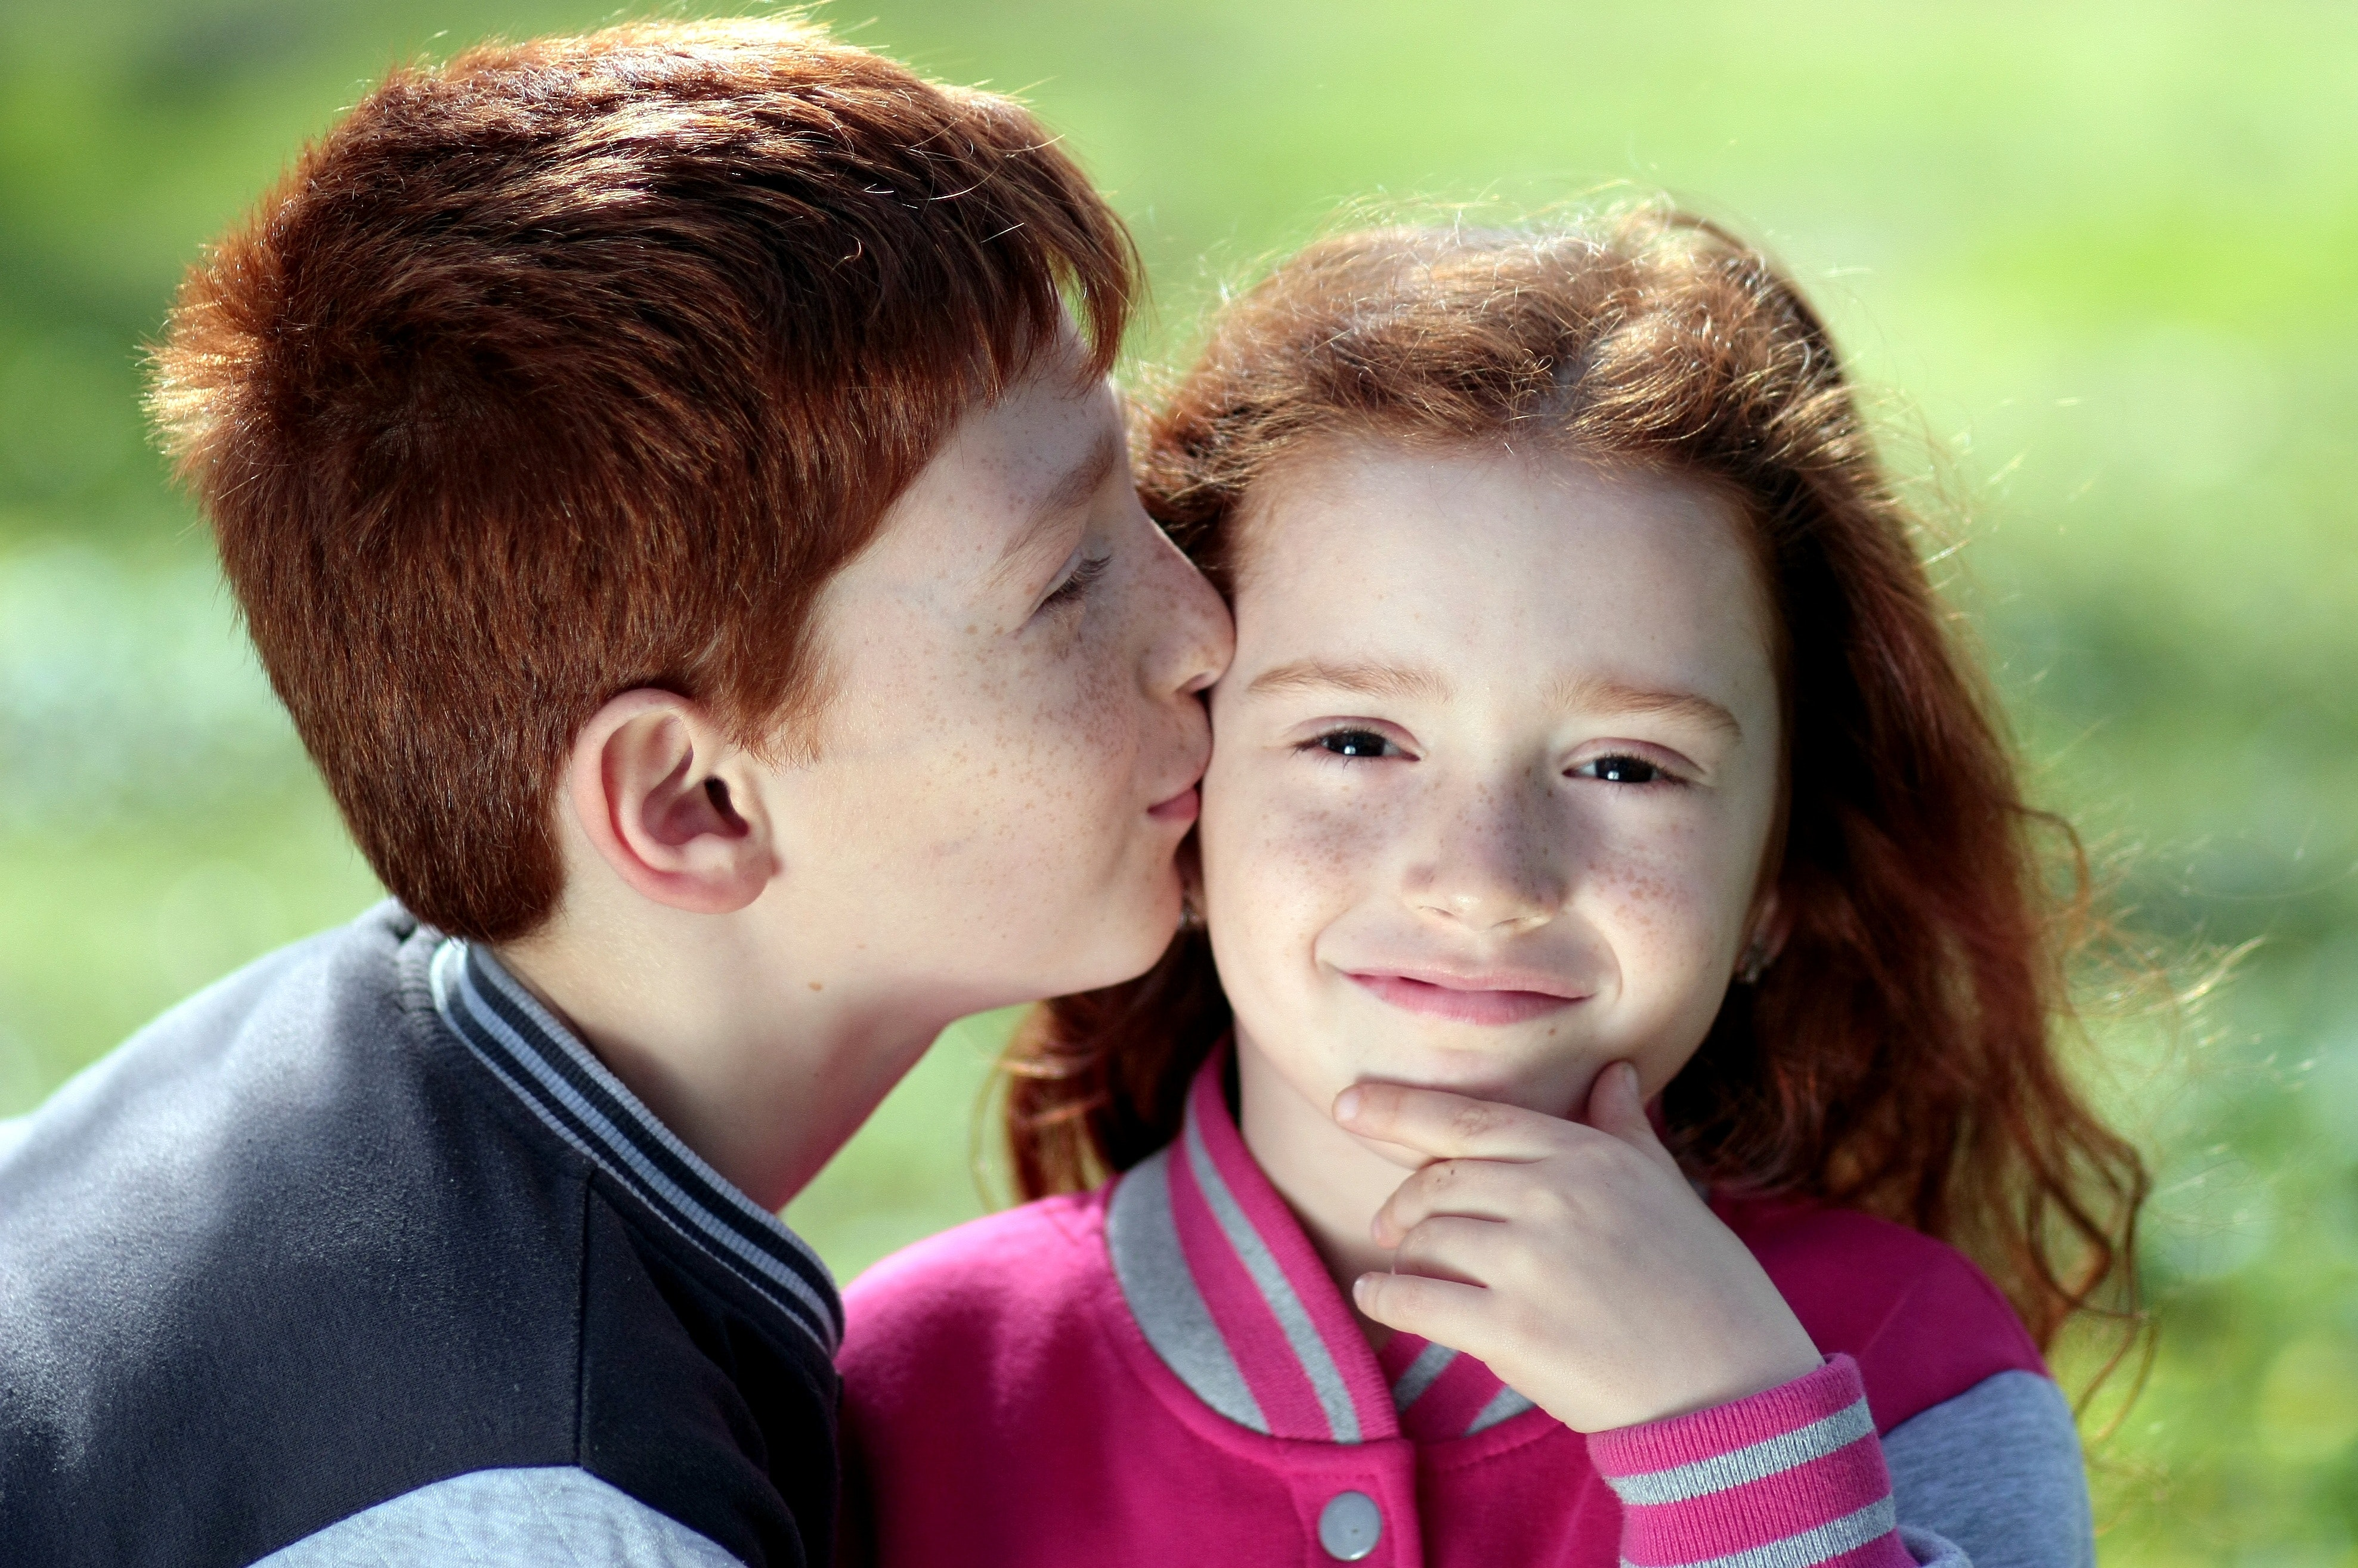 Young Boy Kissing Girl Free Stock Photo